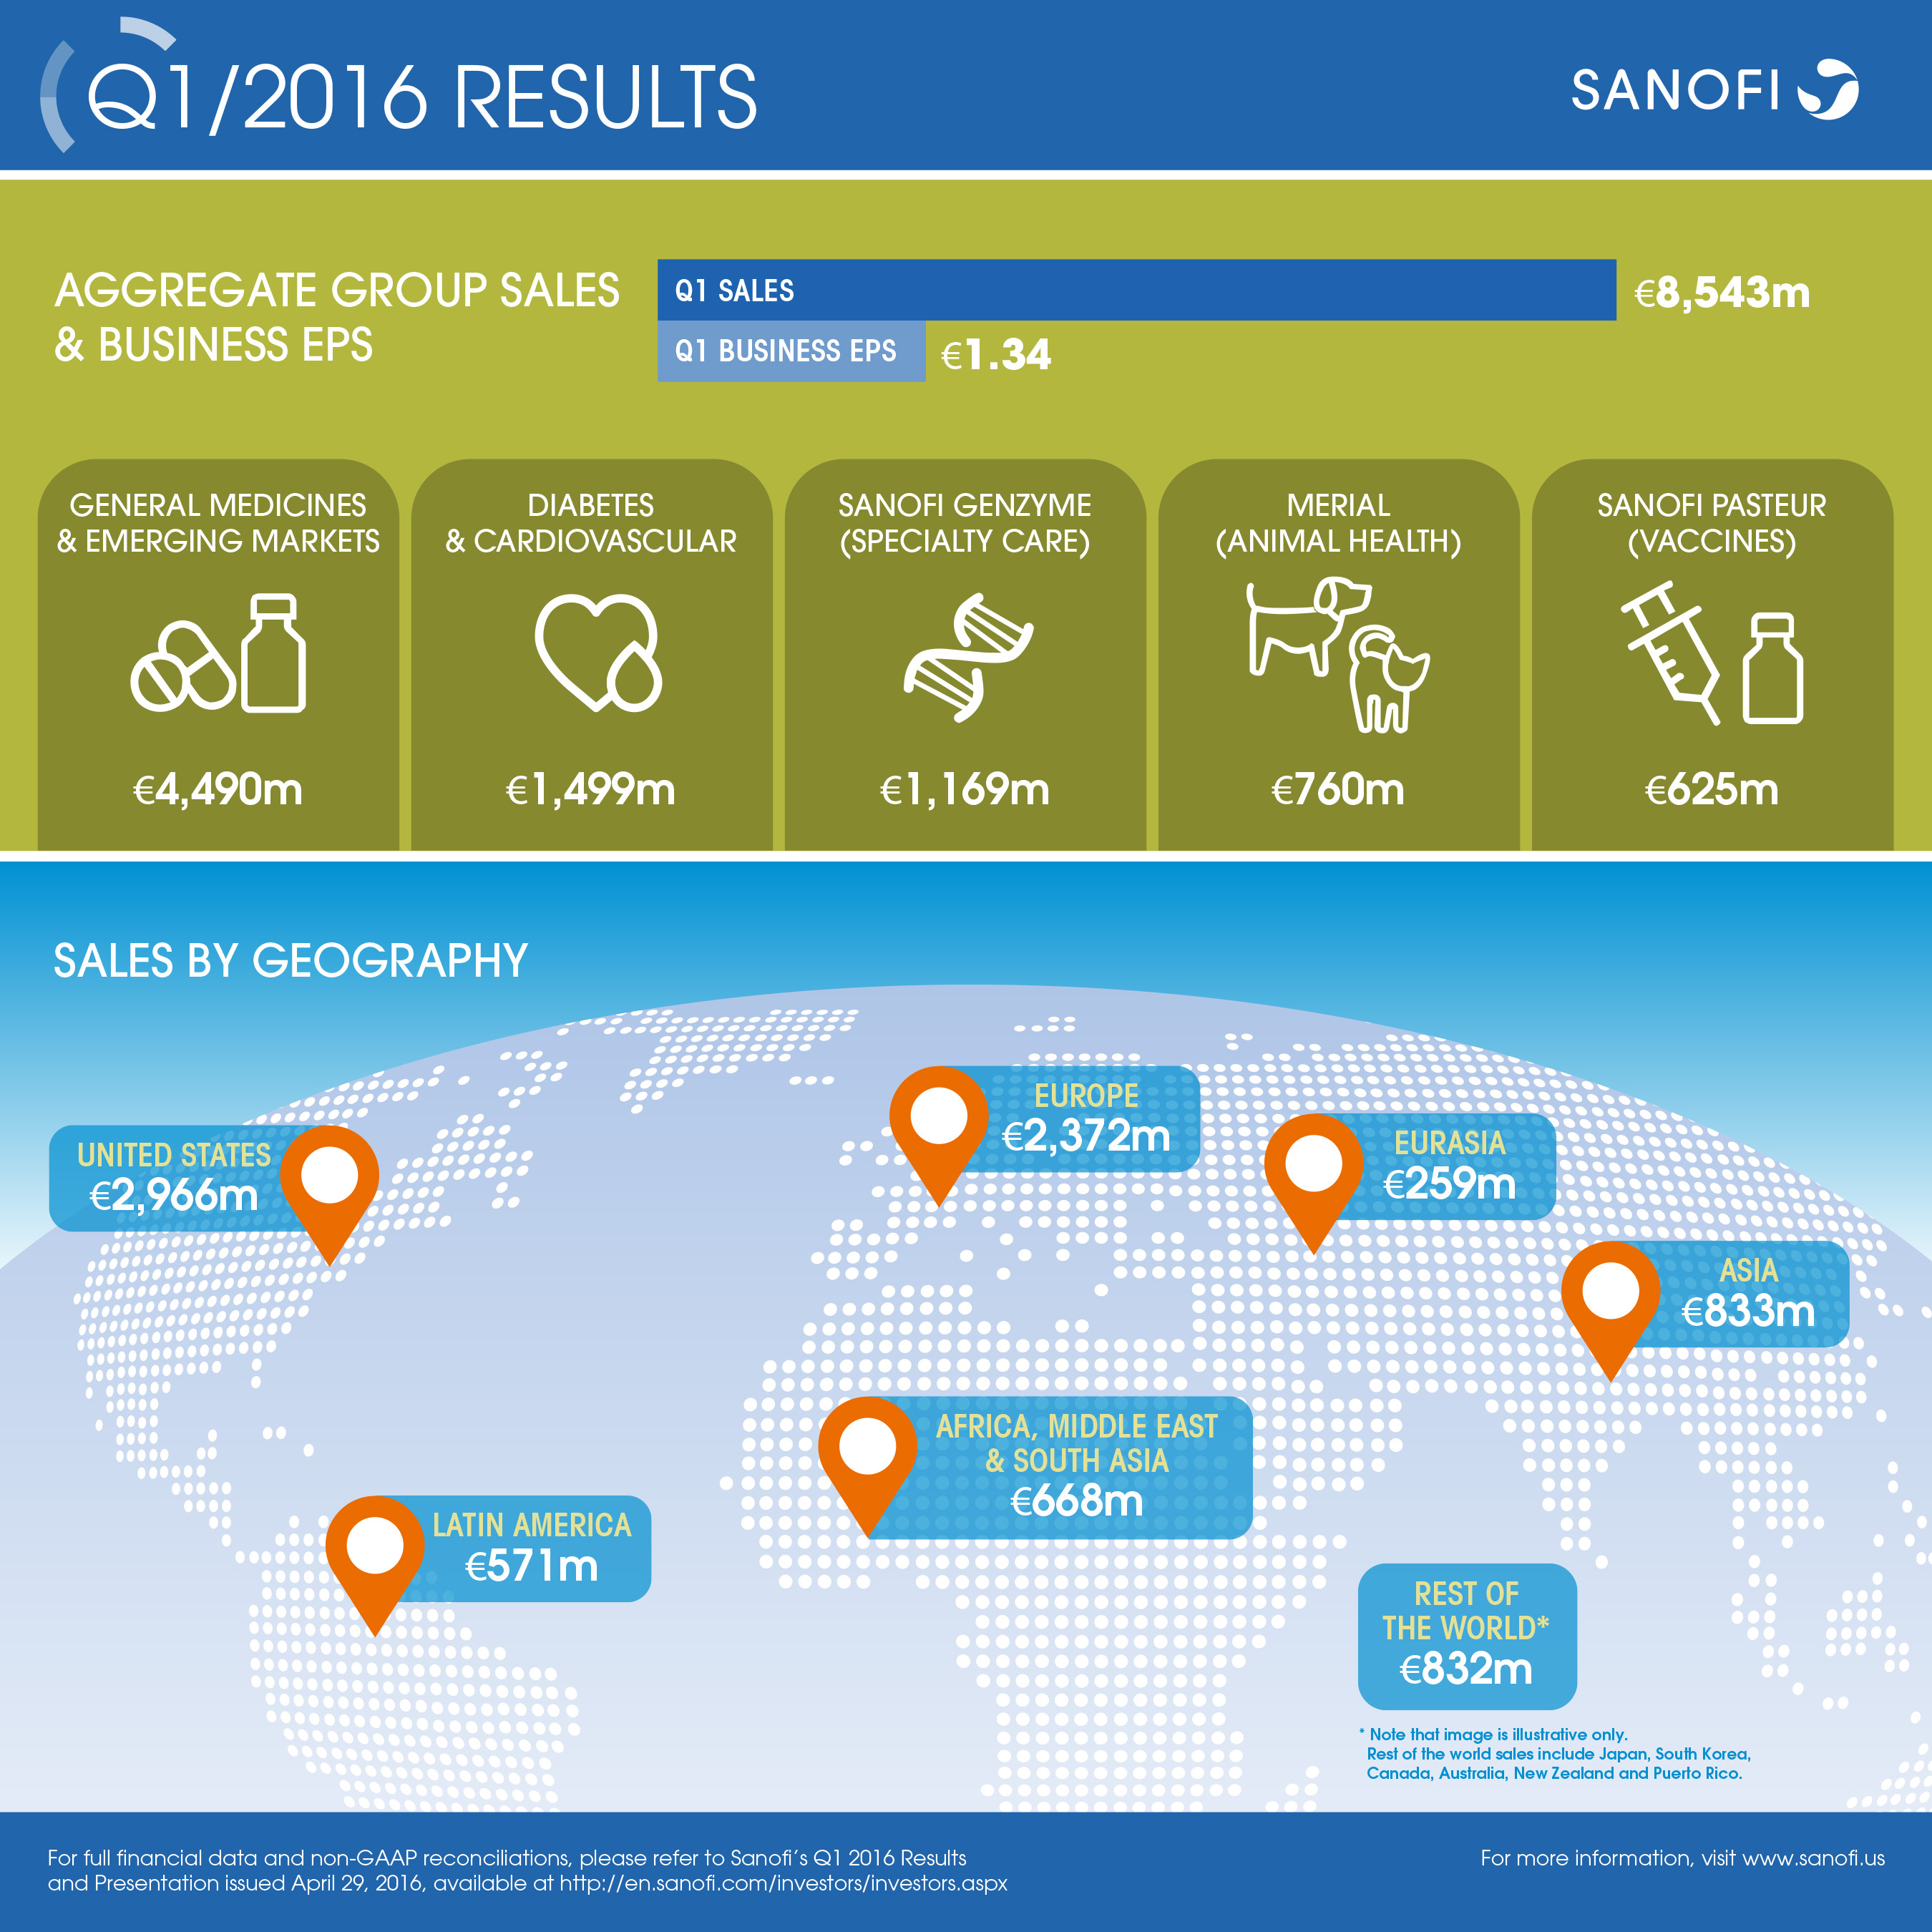 Sanofi Q1 2016 Earnings Results Infographic